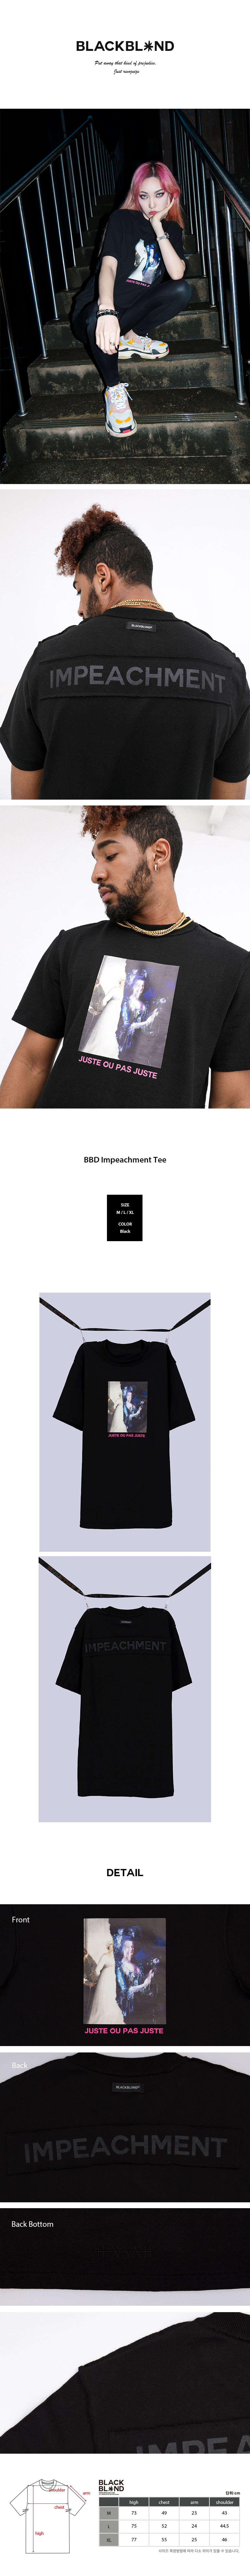 블랙블론드 BLACKBLOND -BBD Impeachment Tee (Black)